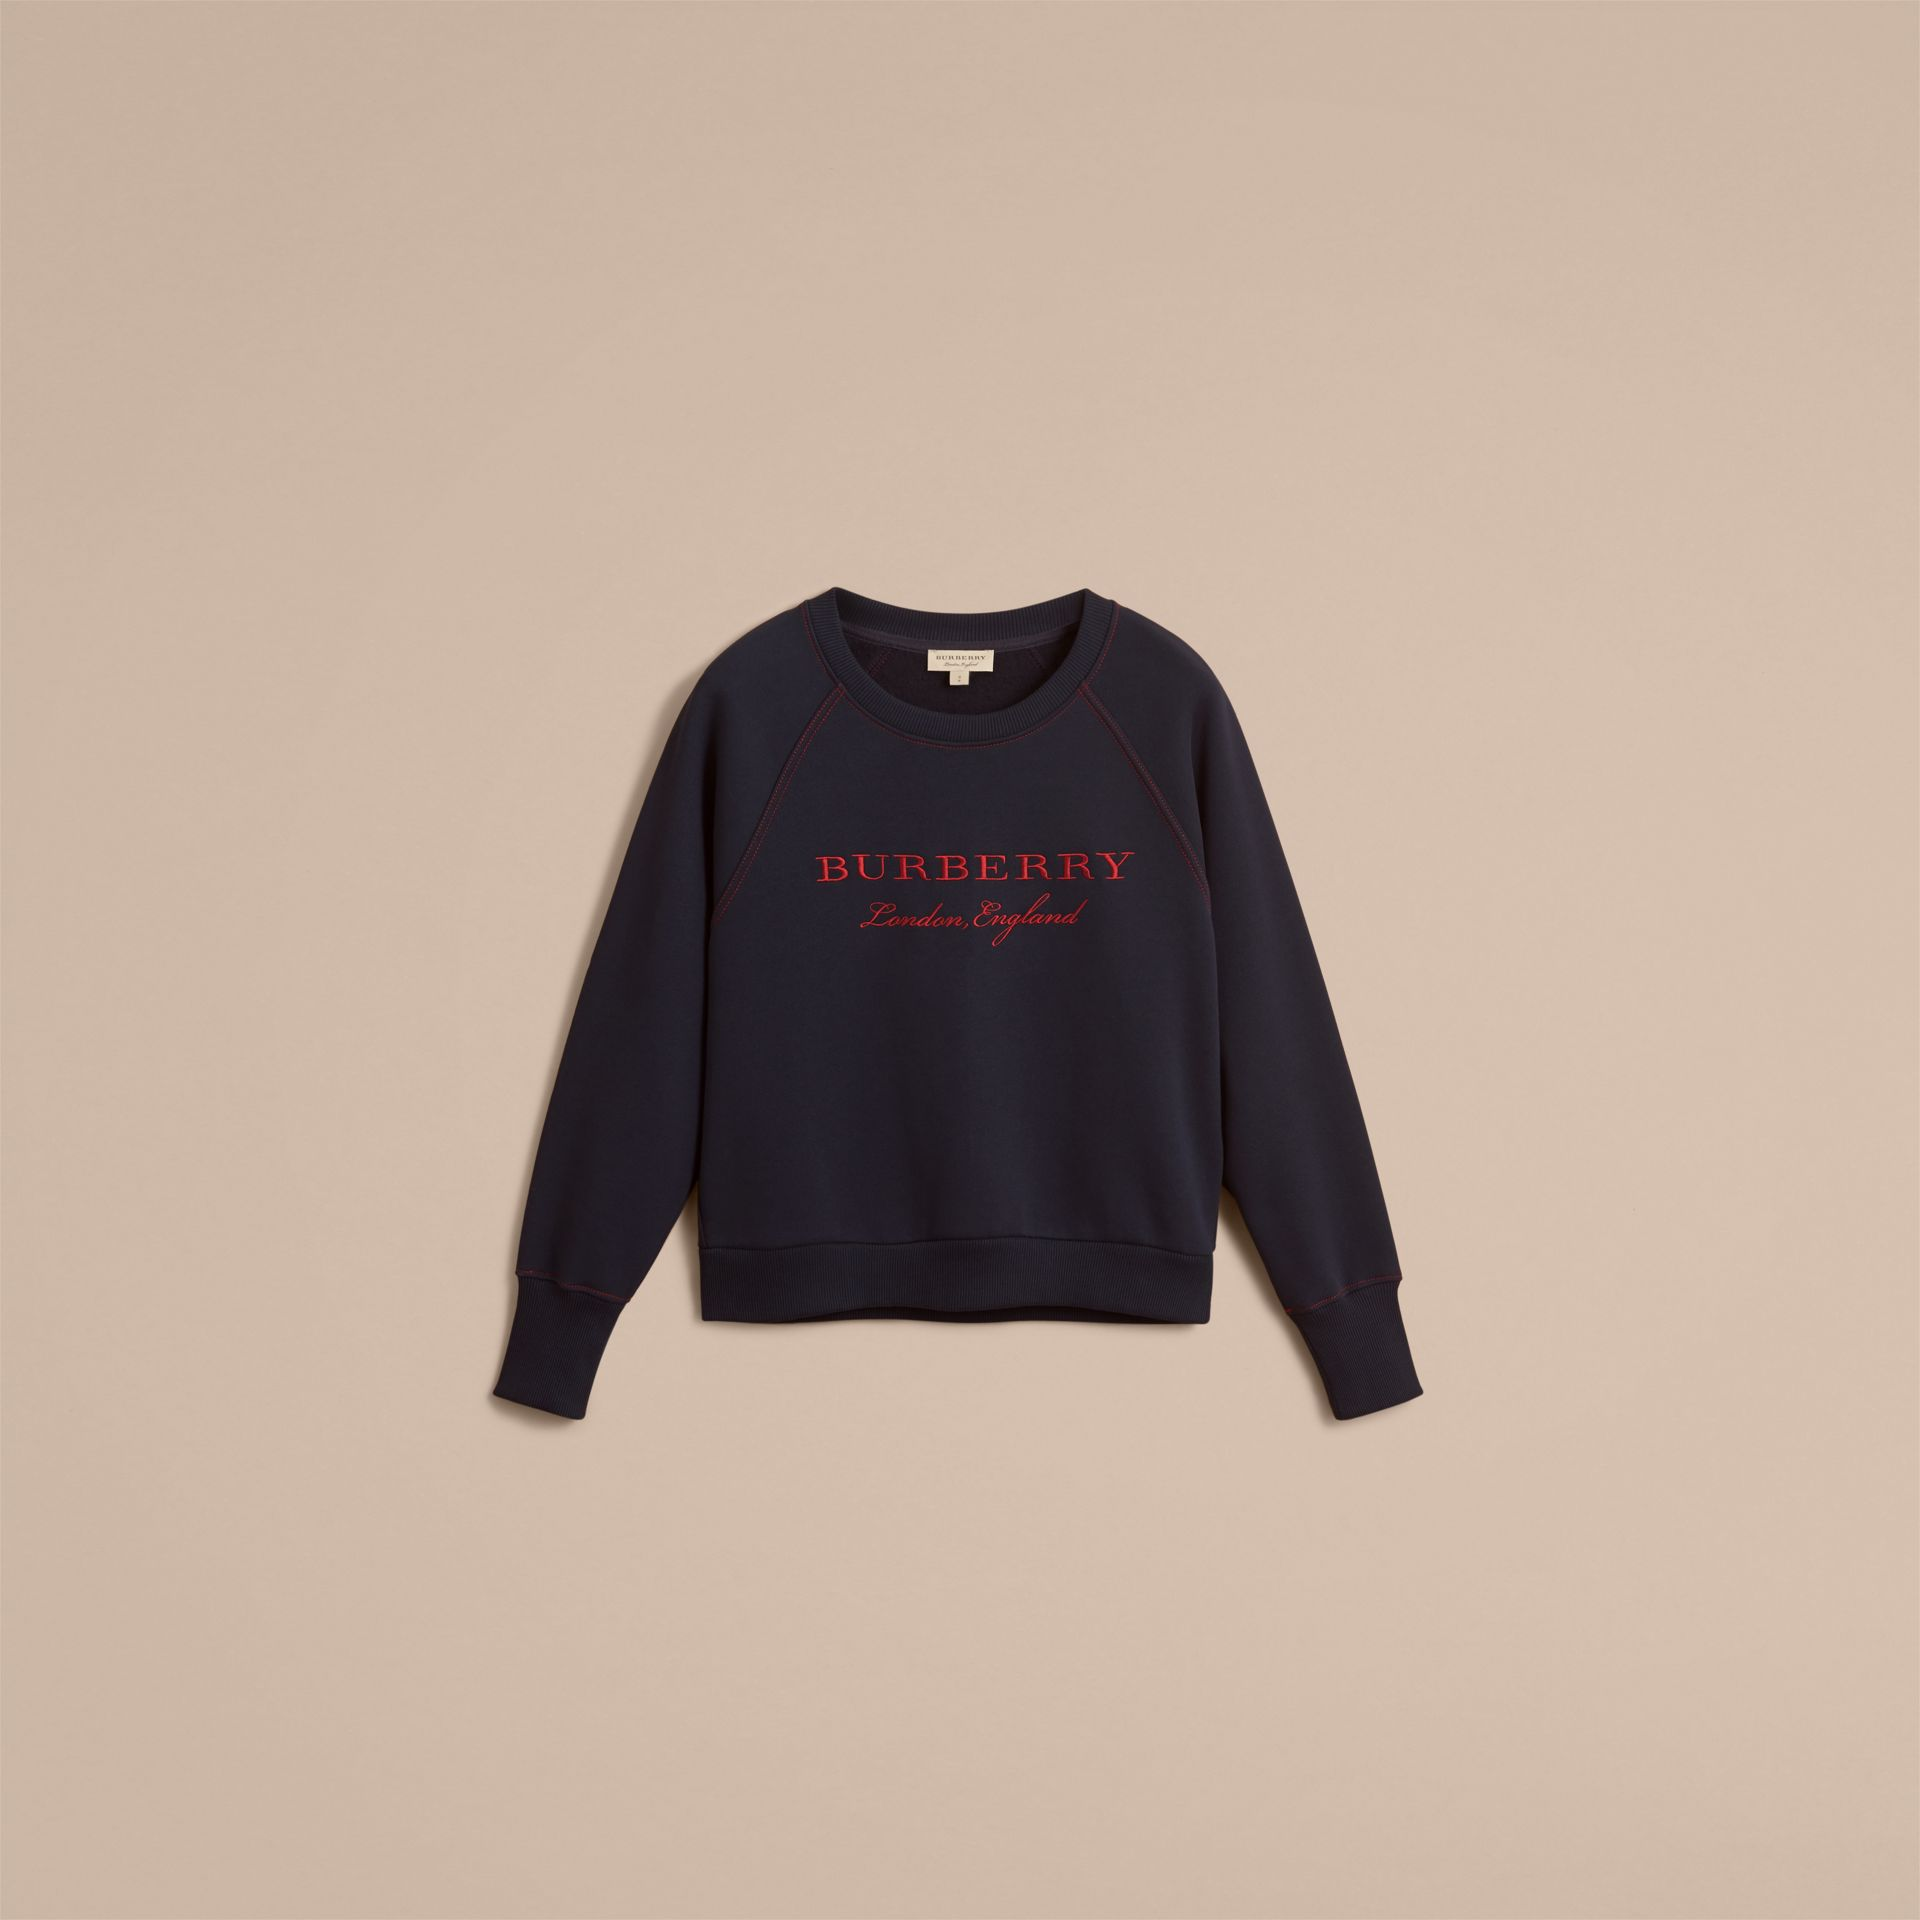 Embroidered Cotton Blend Jersey Sweatshirt in Navy - Women | Burberry Canada - gallery image 4